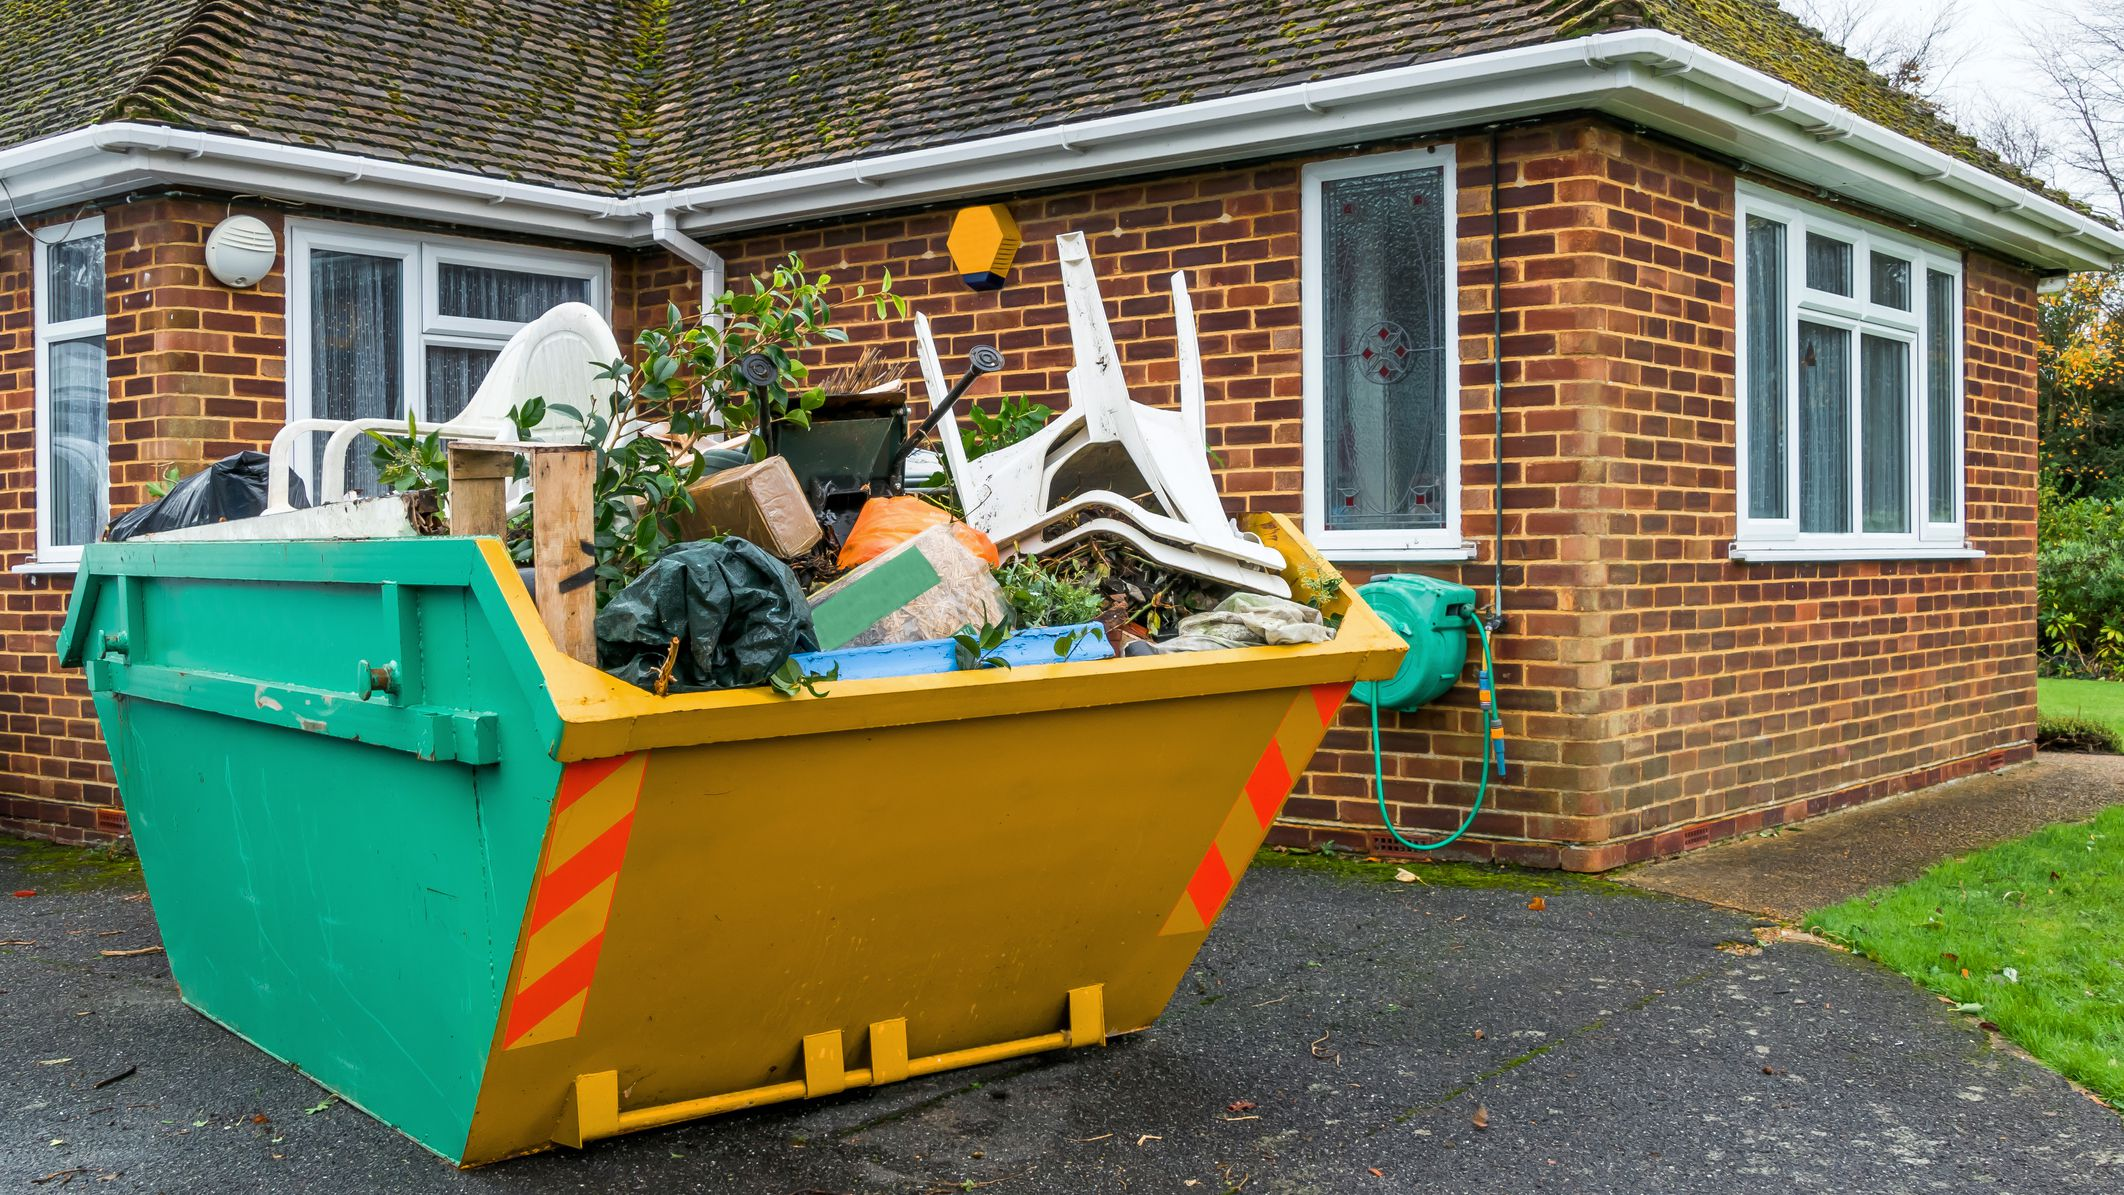 How to Rent a Dumpster or Container for Remodel Debris